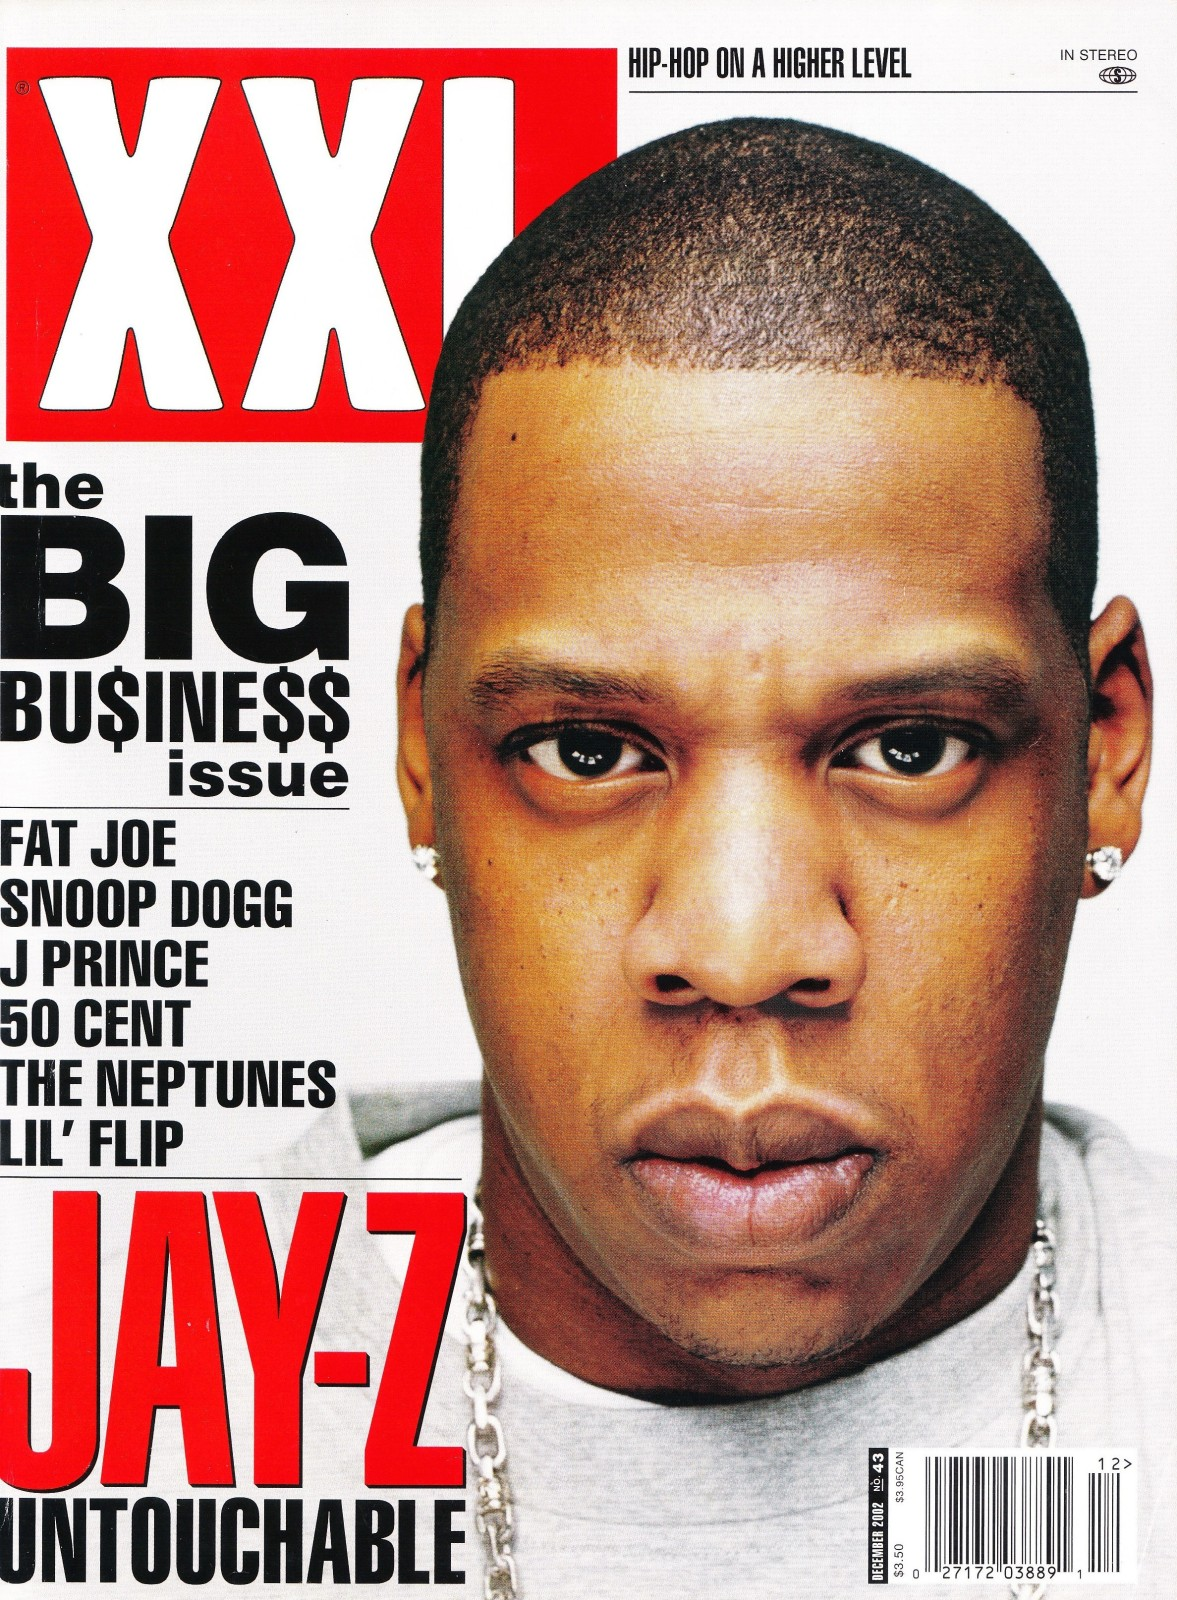 Dar hip hop jay zs the blueprint 2 the gift the curse when 2002 began jay z was honestly dealing with the effects of a possible loss in the rap battle to nas granted the battle remains debatable to this day malvernweather Gallery